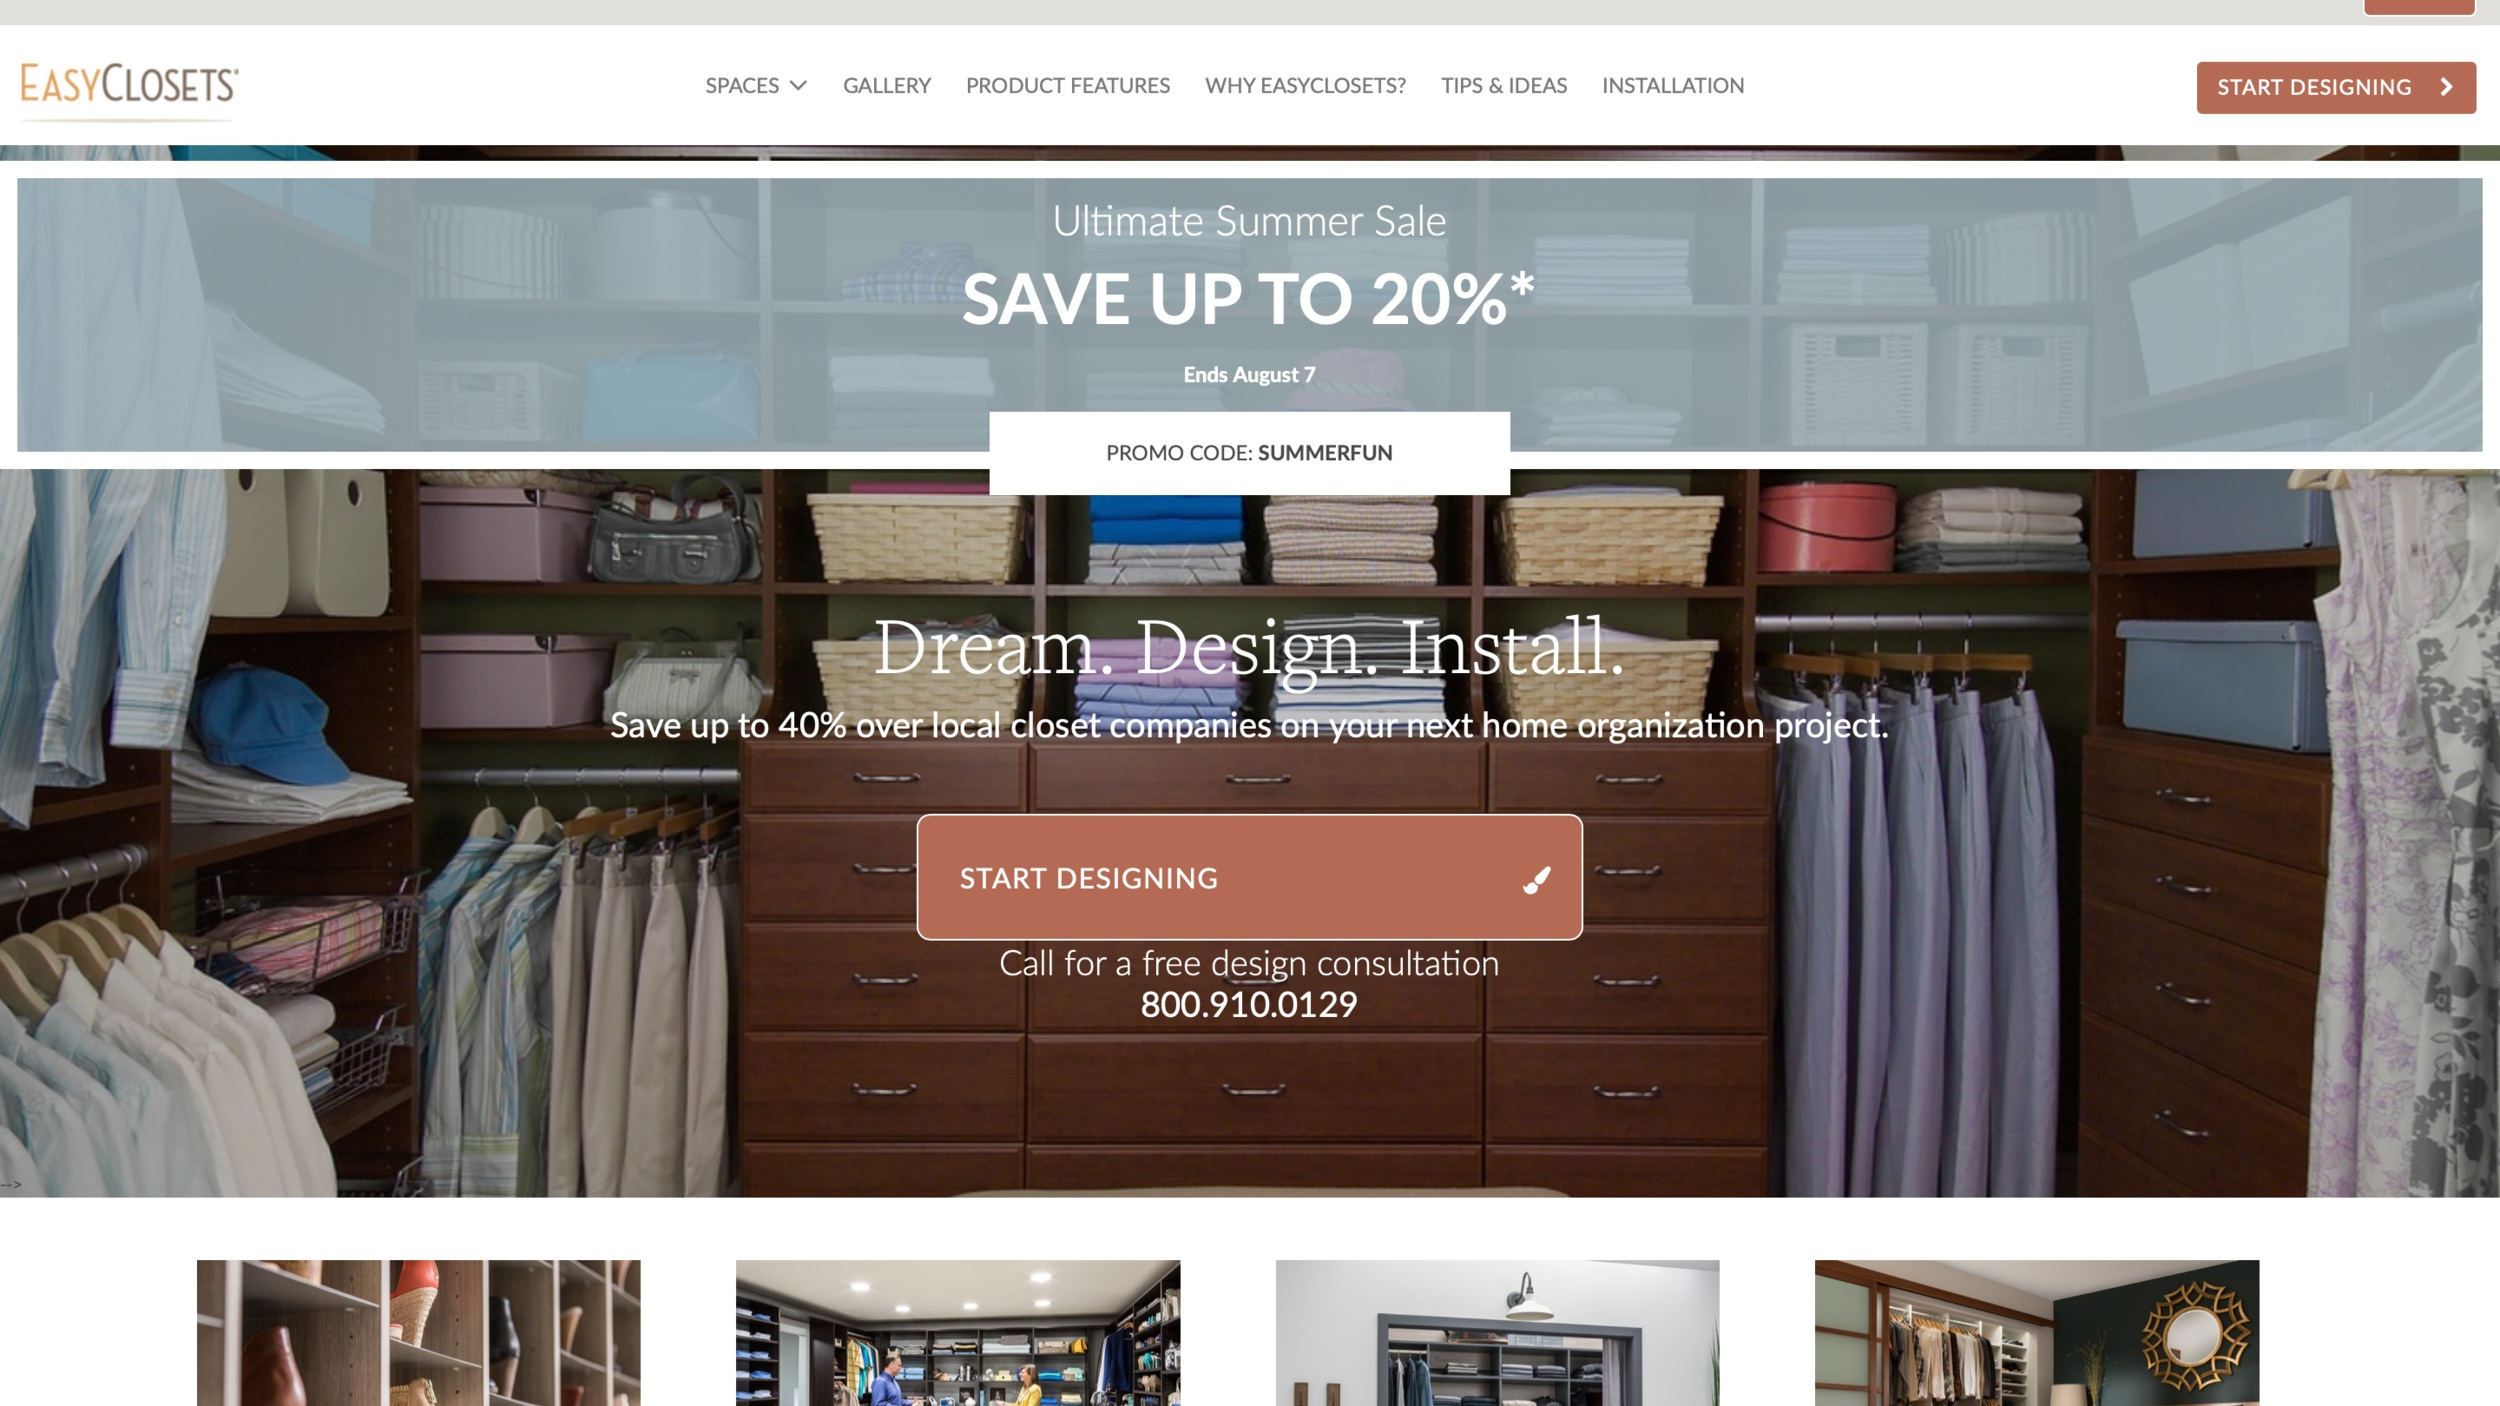 Best digital marketing and PR for the home services and home decor industries. Easy Closets  https://www.easyclosets.com